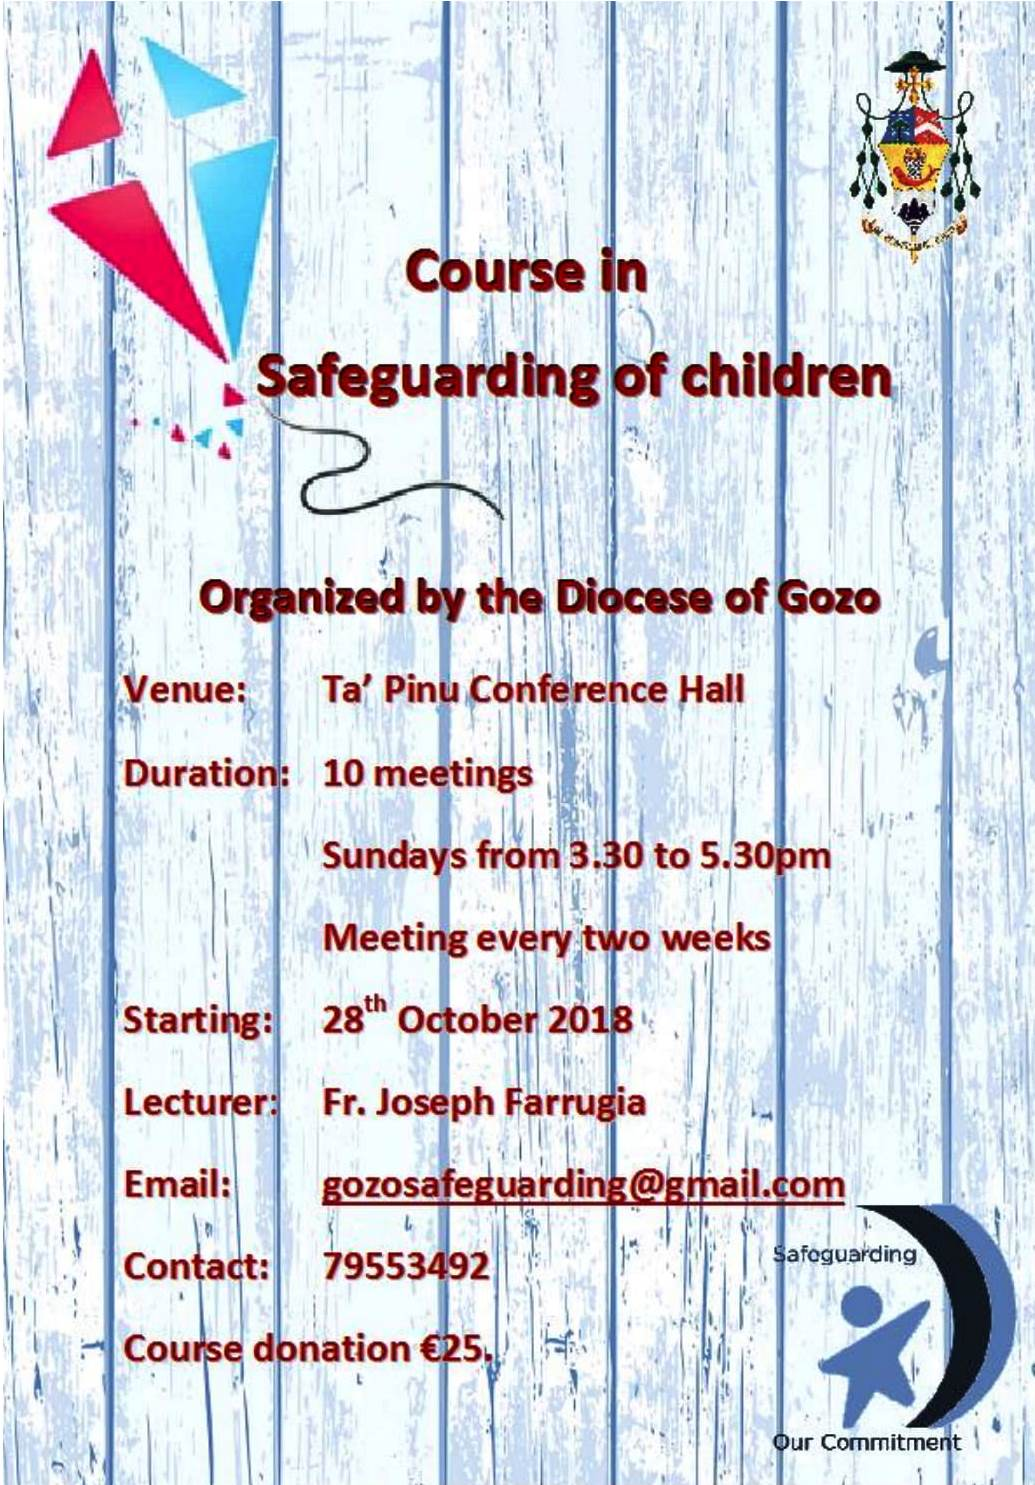 course-in-safeguarding-of-children-2018-2019-1.jpg